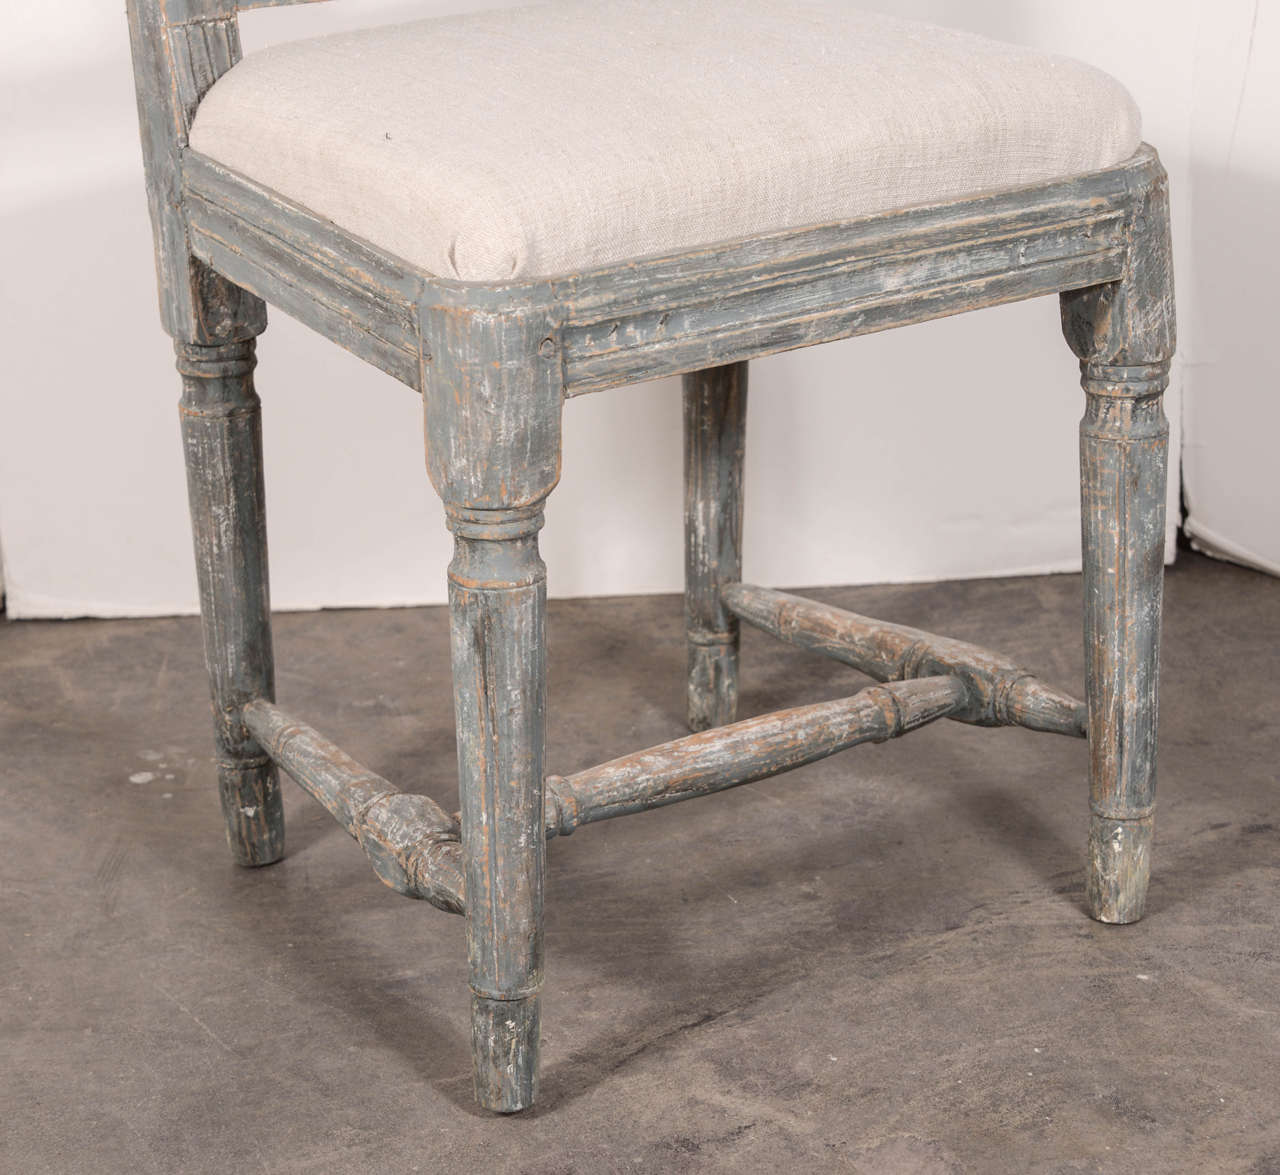 Swedish Gustavian Blue Painted Slat Back Dining Chairs from circa 1790 For Sale 6